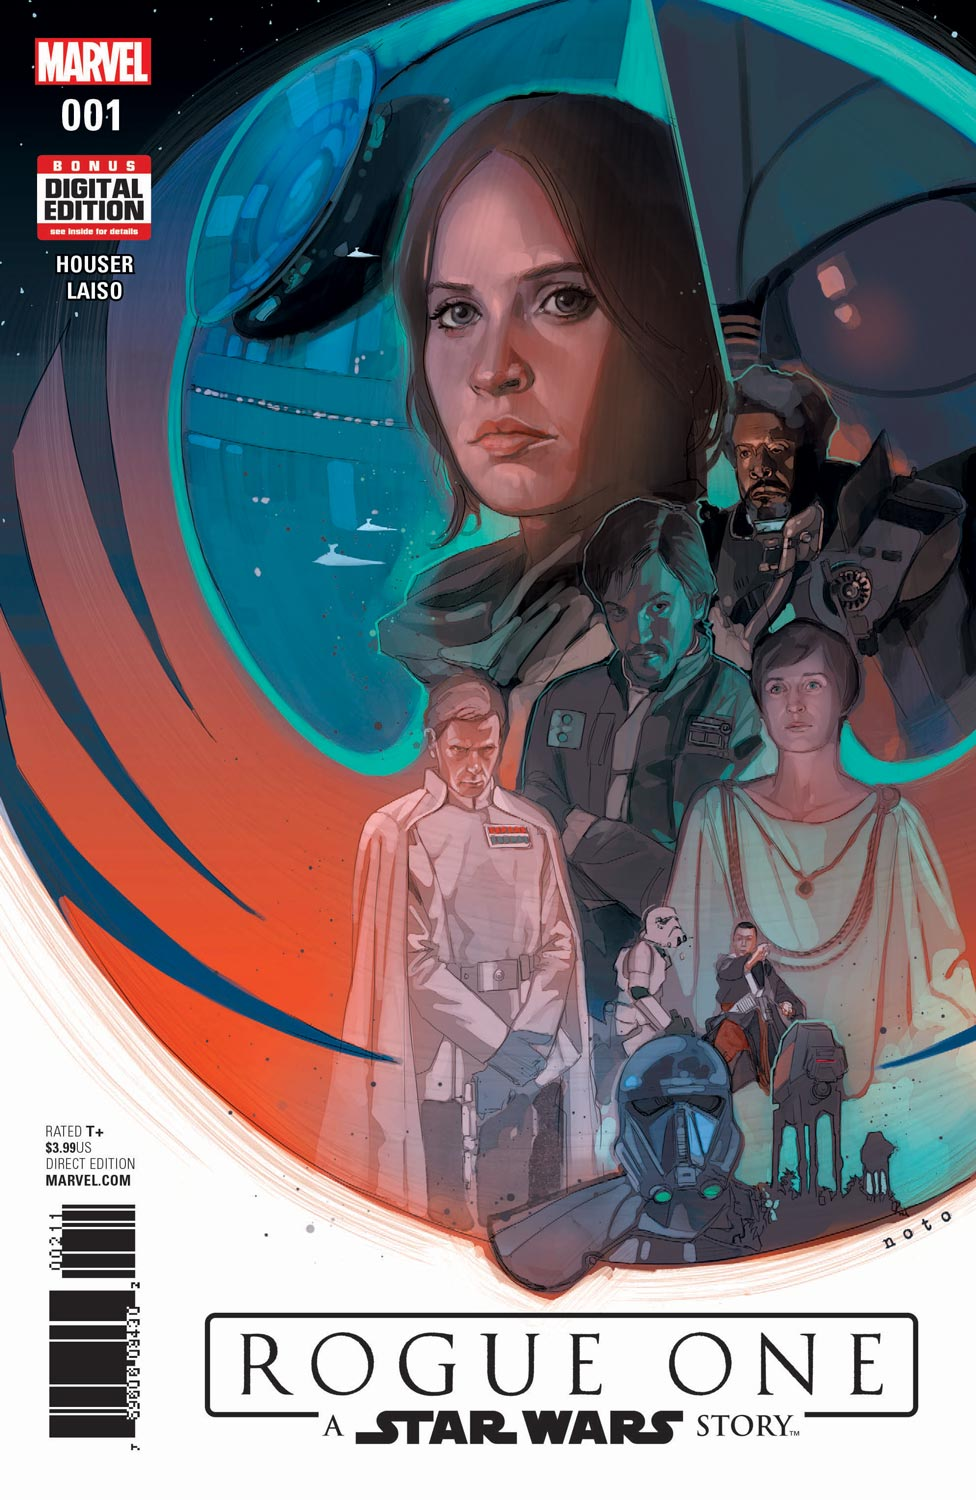 Rogue One: A Star Wars Story To Get Comic Book Adaptation This Spring